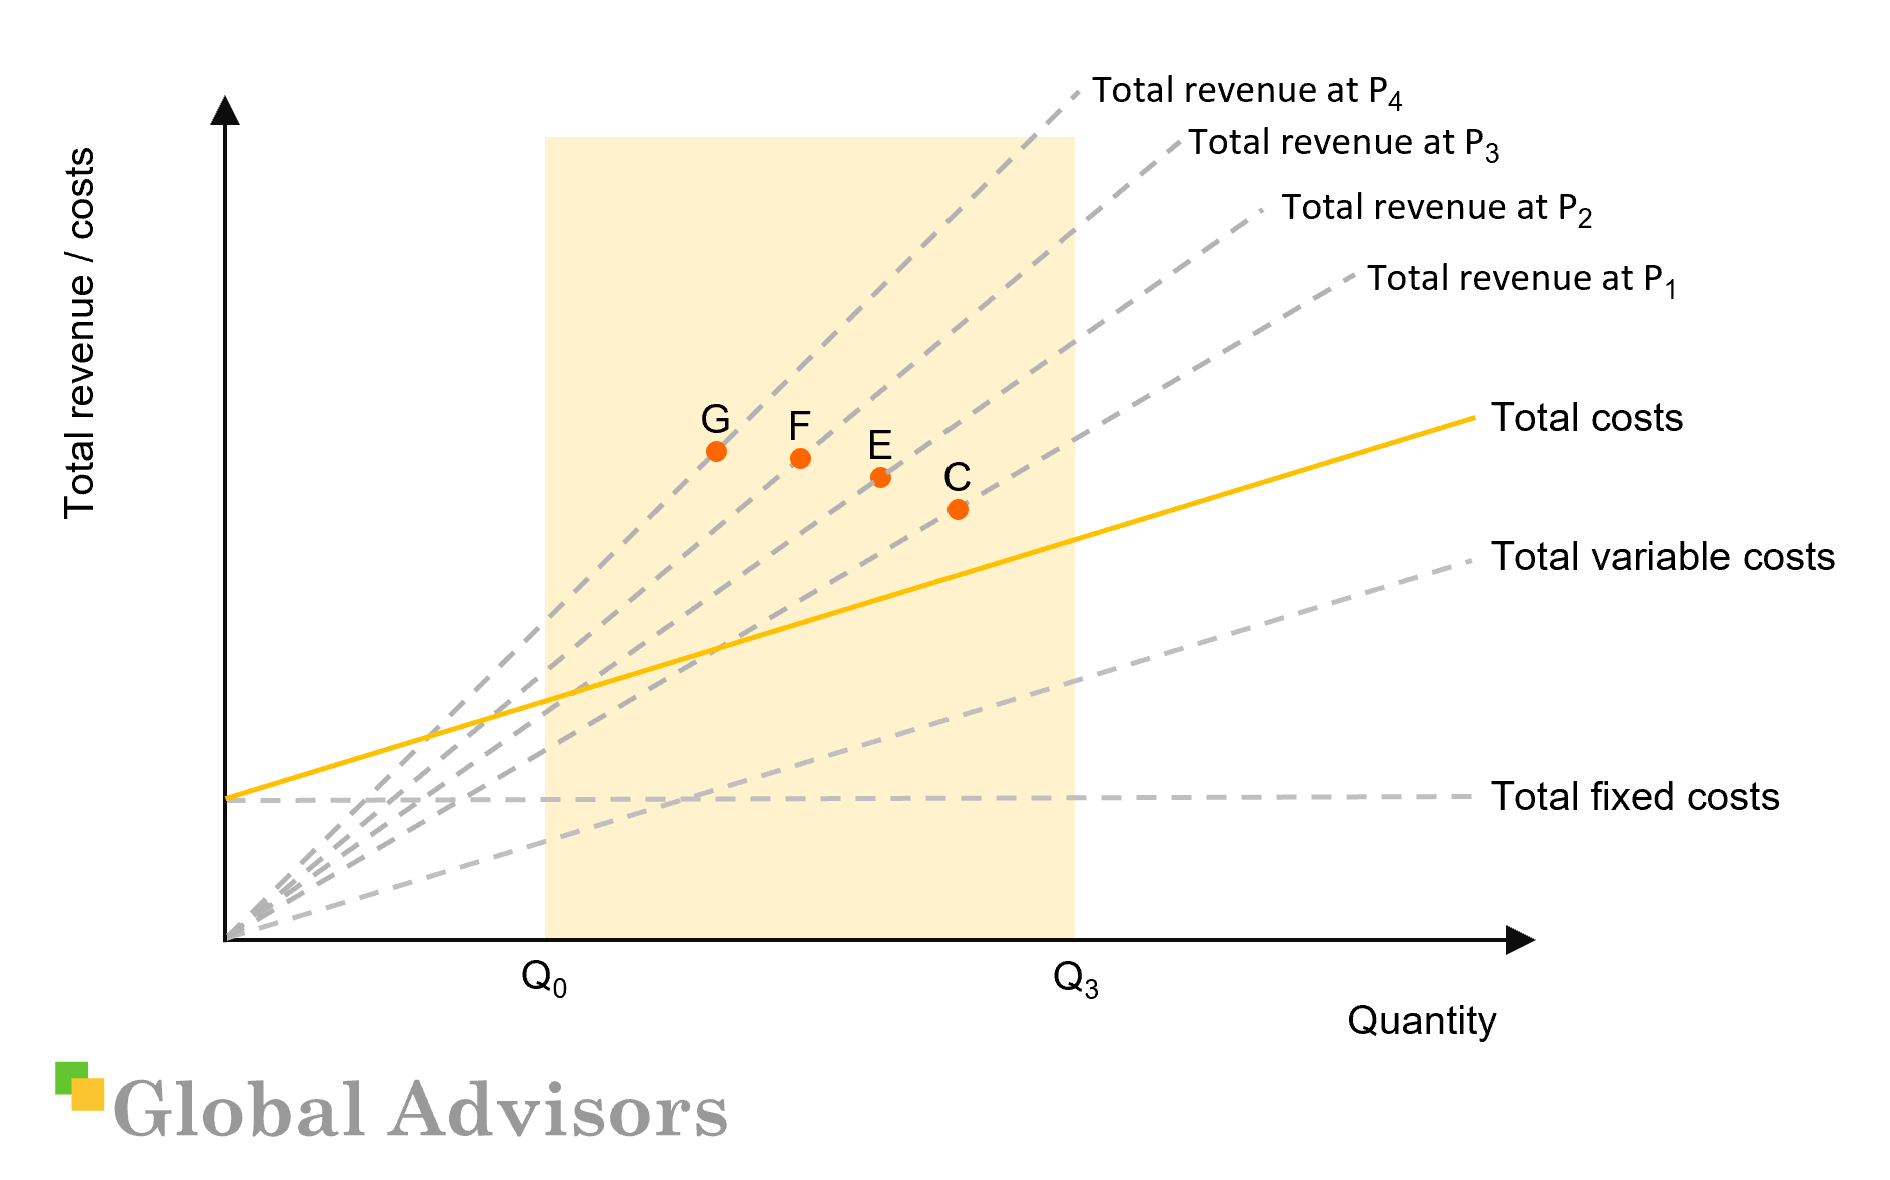 A CVP diagram showing the effects of changes in price and elasticity on total revenue